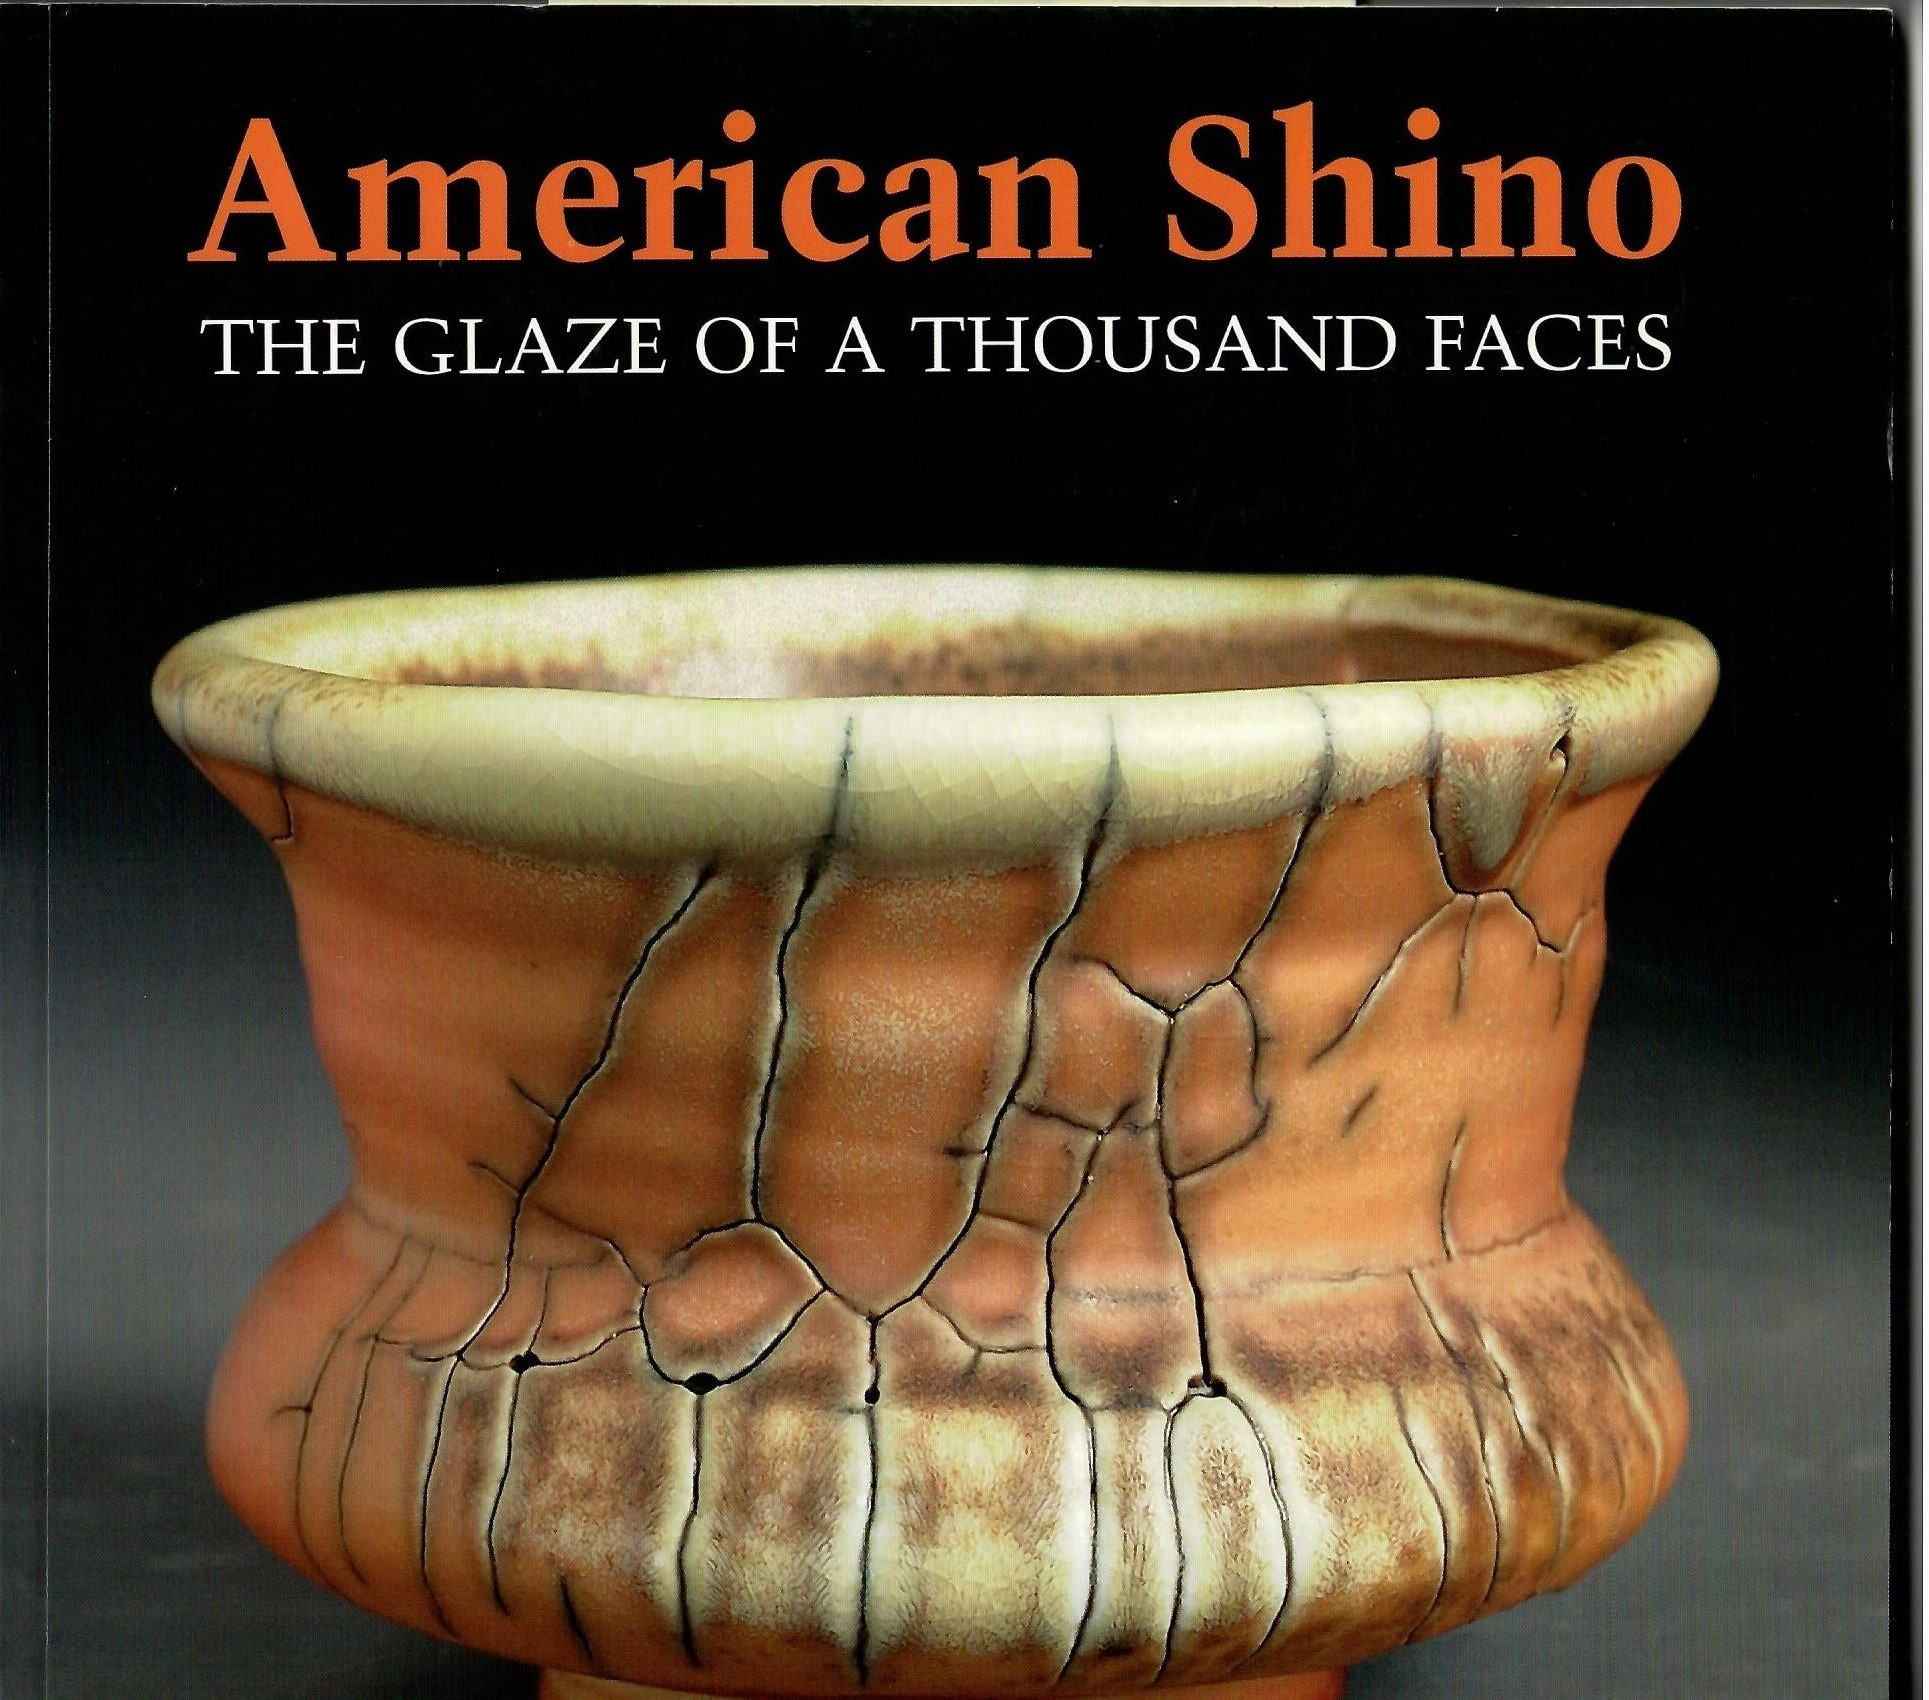 Image for The Glaze of a Thousand Faces; AMERICAN SHINO